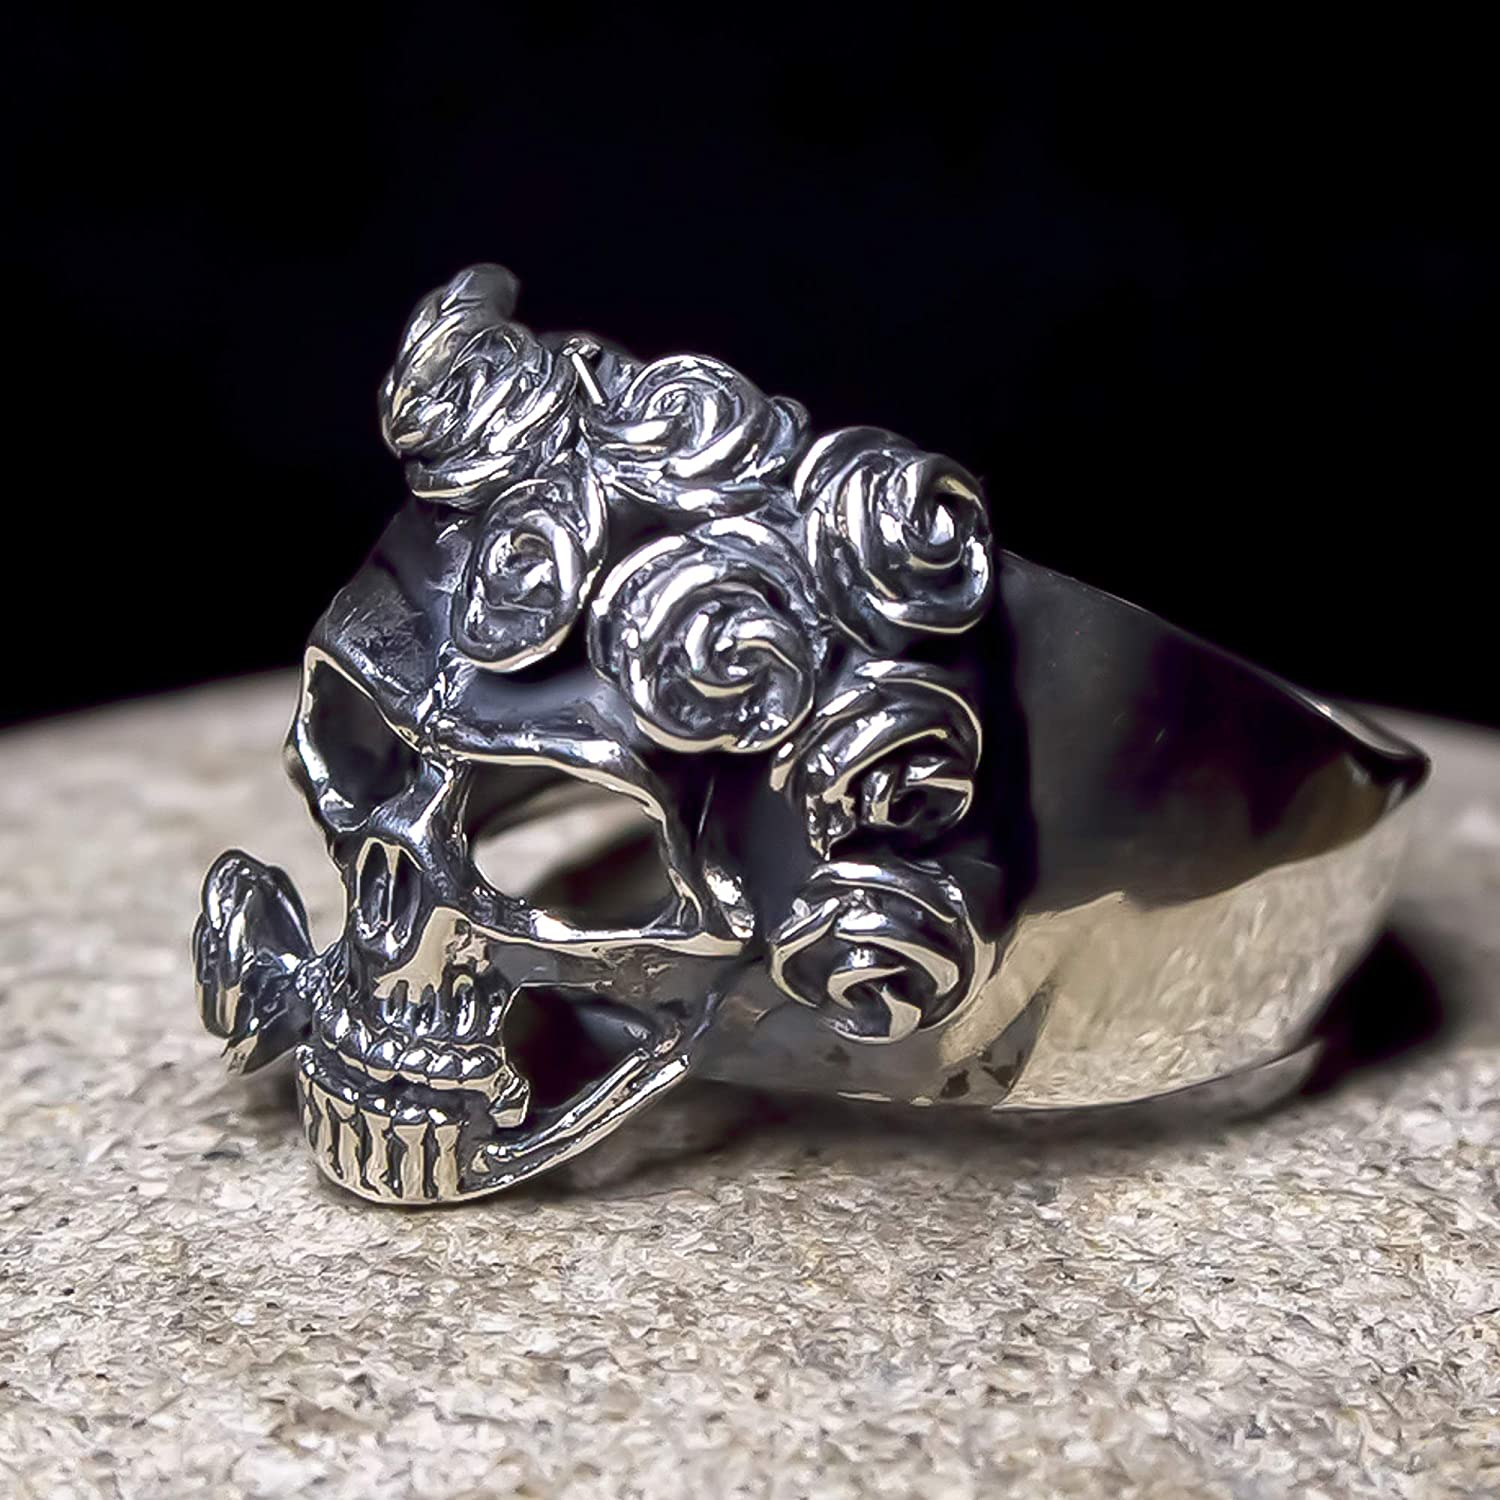 mirror polished ring Skull Silver Ring Sterling silver 925-biker gothic rock jewelry